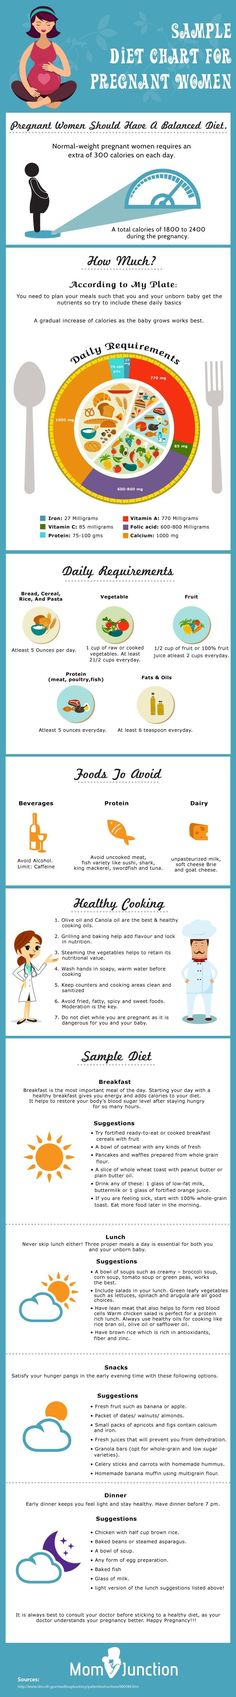 Here Is A Sample Diet Chart For Pregnant Women #Pregnancy